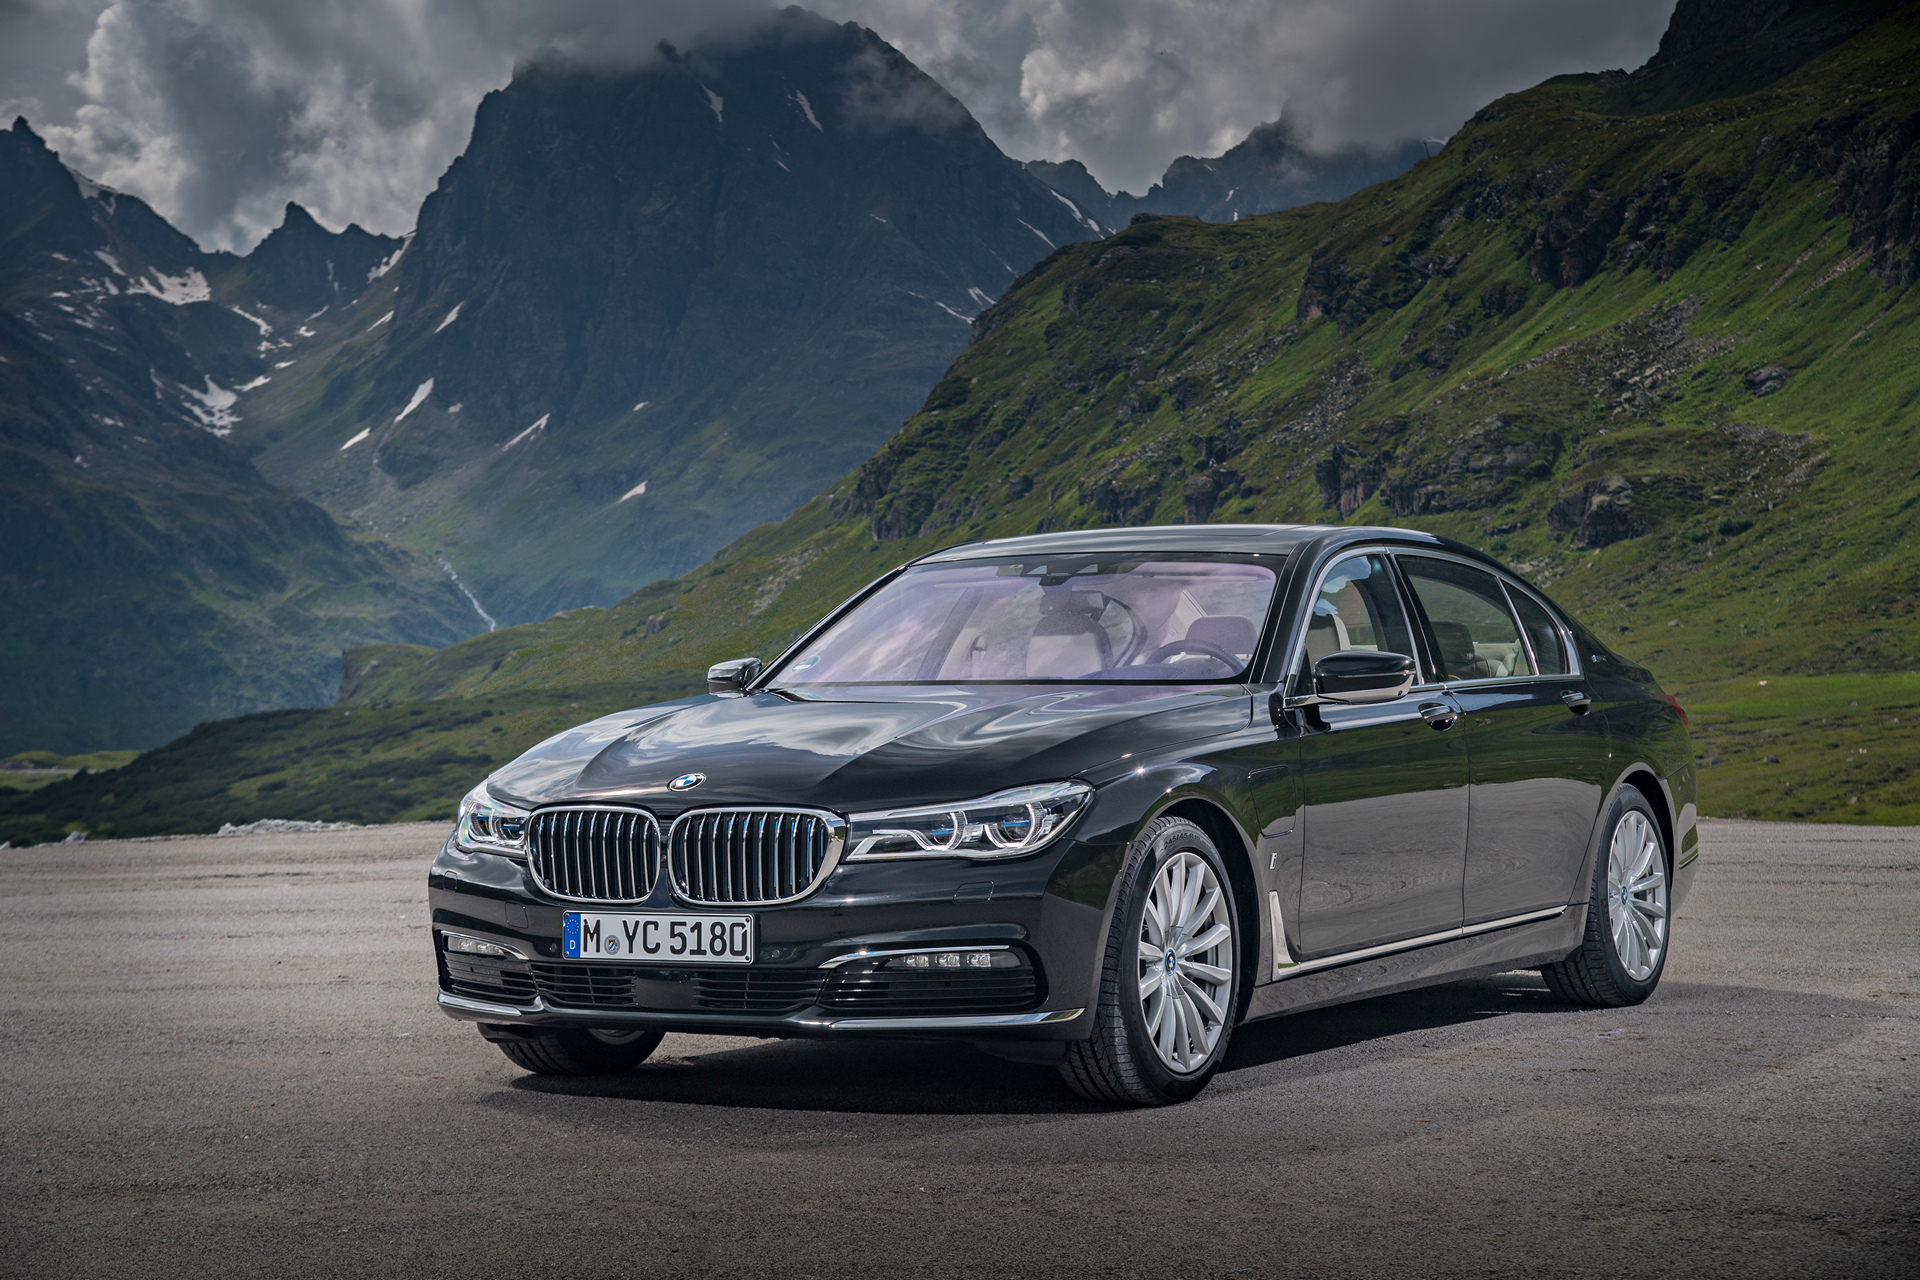 2017 BMW 740e xDrive iPerformance © BMW AG